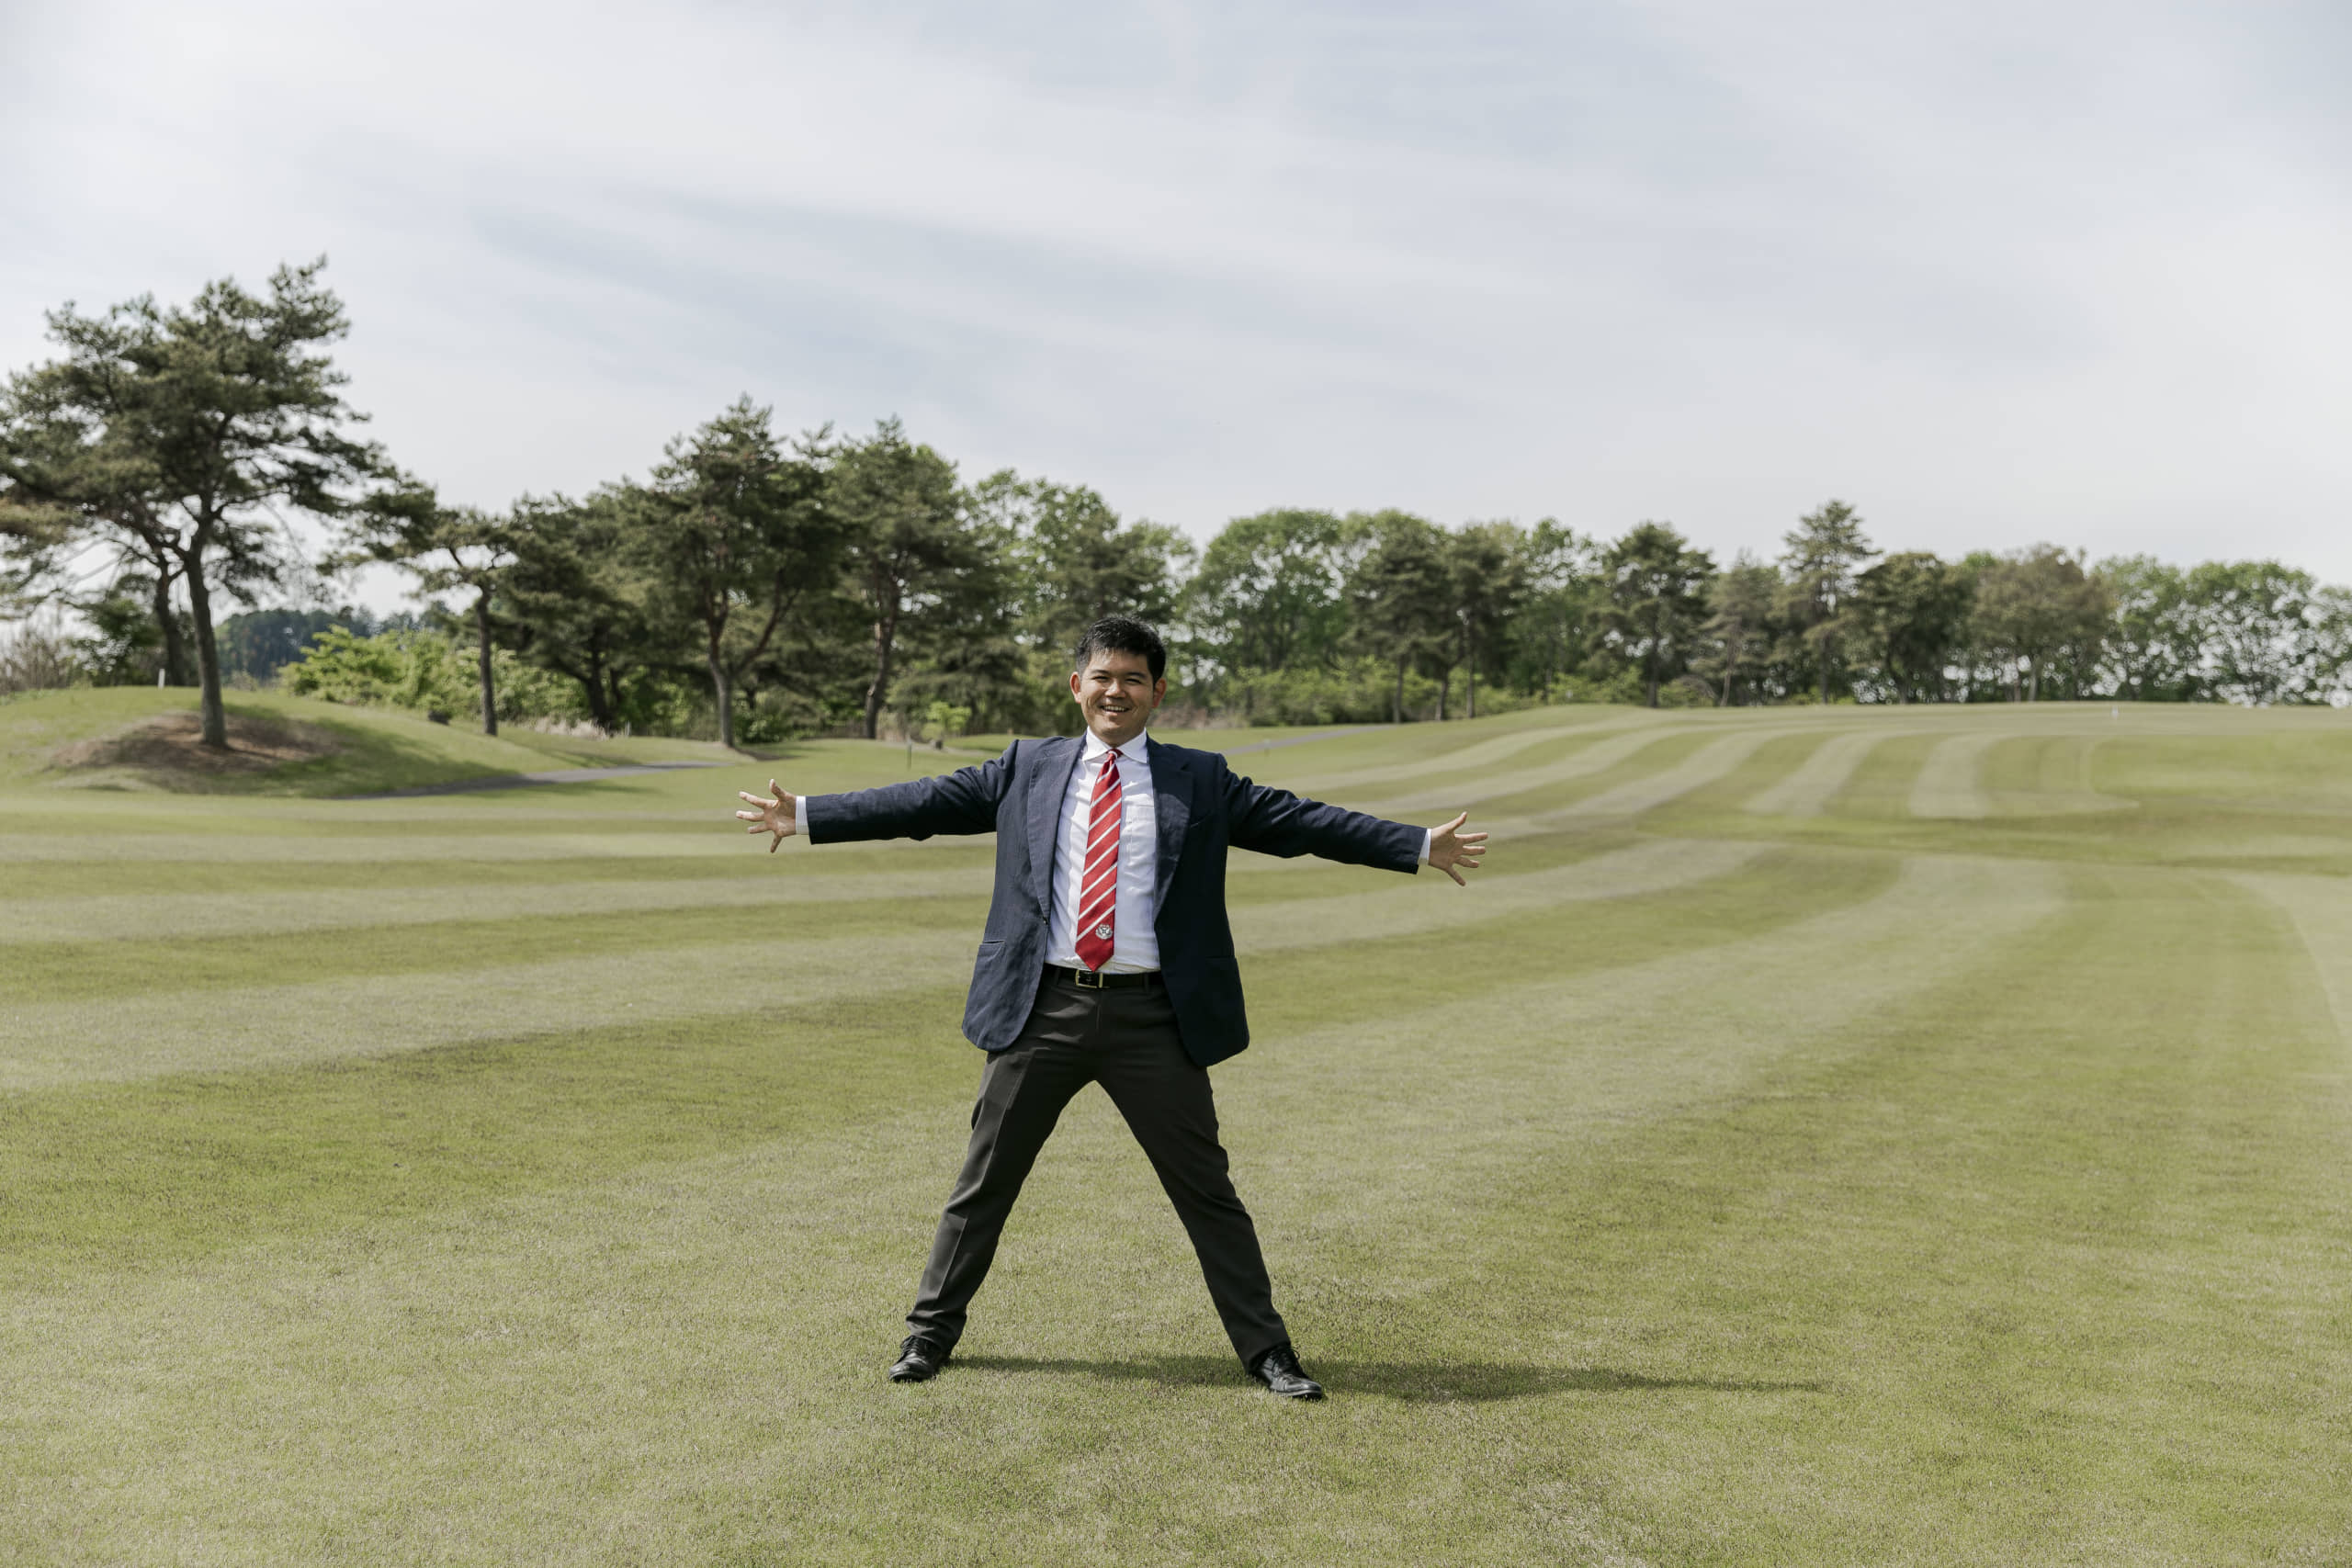 Tadashi Kobayashi, president of the Seven Hundred Club, shows off its footgolf course in the city of Sakura, Tochigi Prefecture, which is set to host the Footgolf World Cup this autumn. | THE SEVEN HUNDRED CLUB